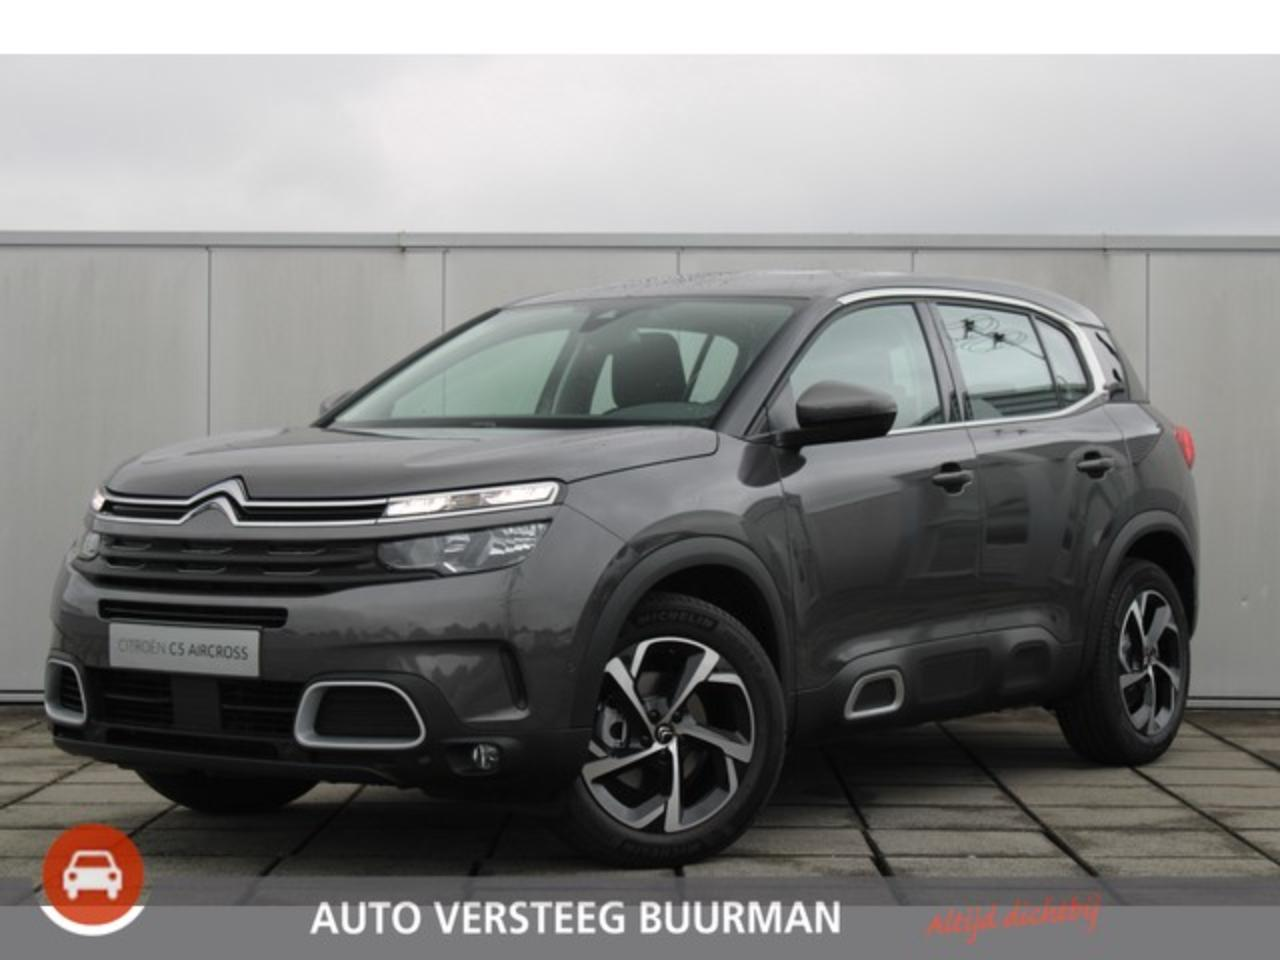 Citroën C5 AIRCROSS 1.2 PureTech Business Actie! 2 jaar Private Lease